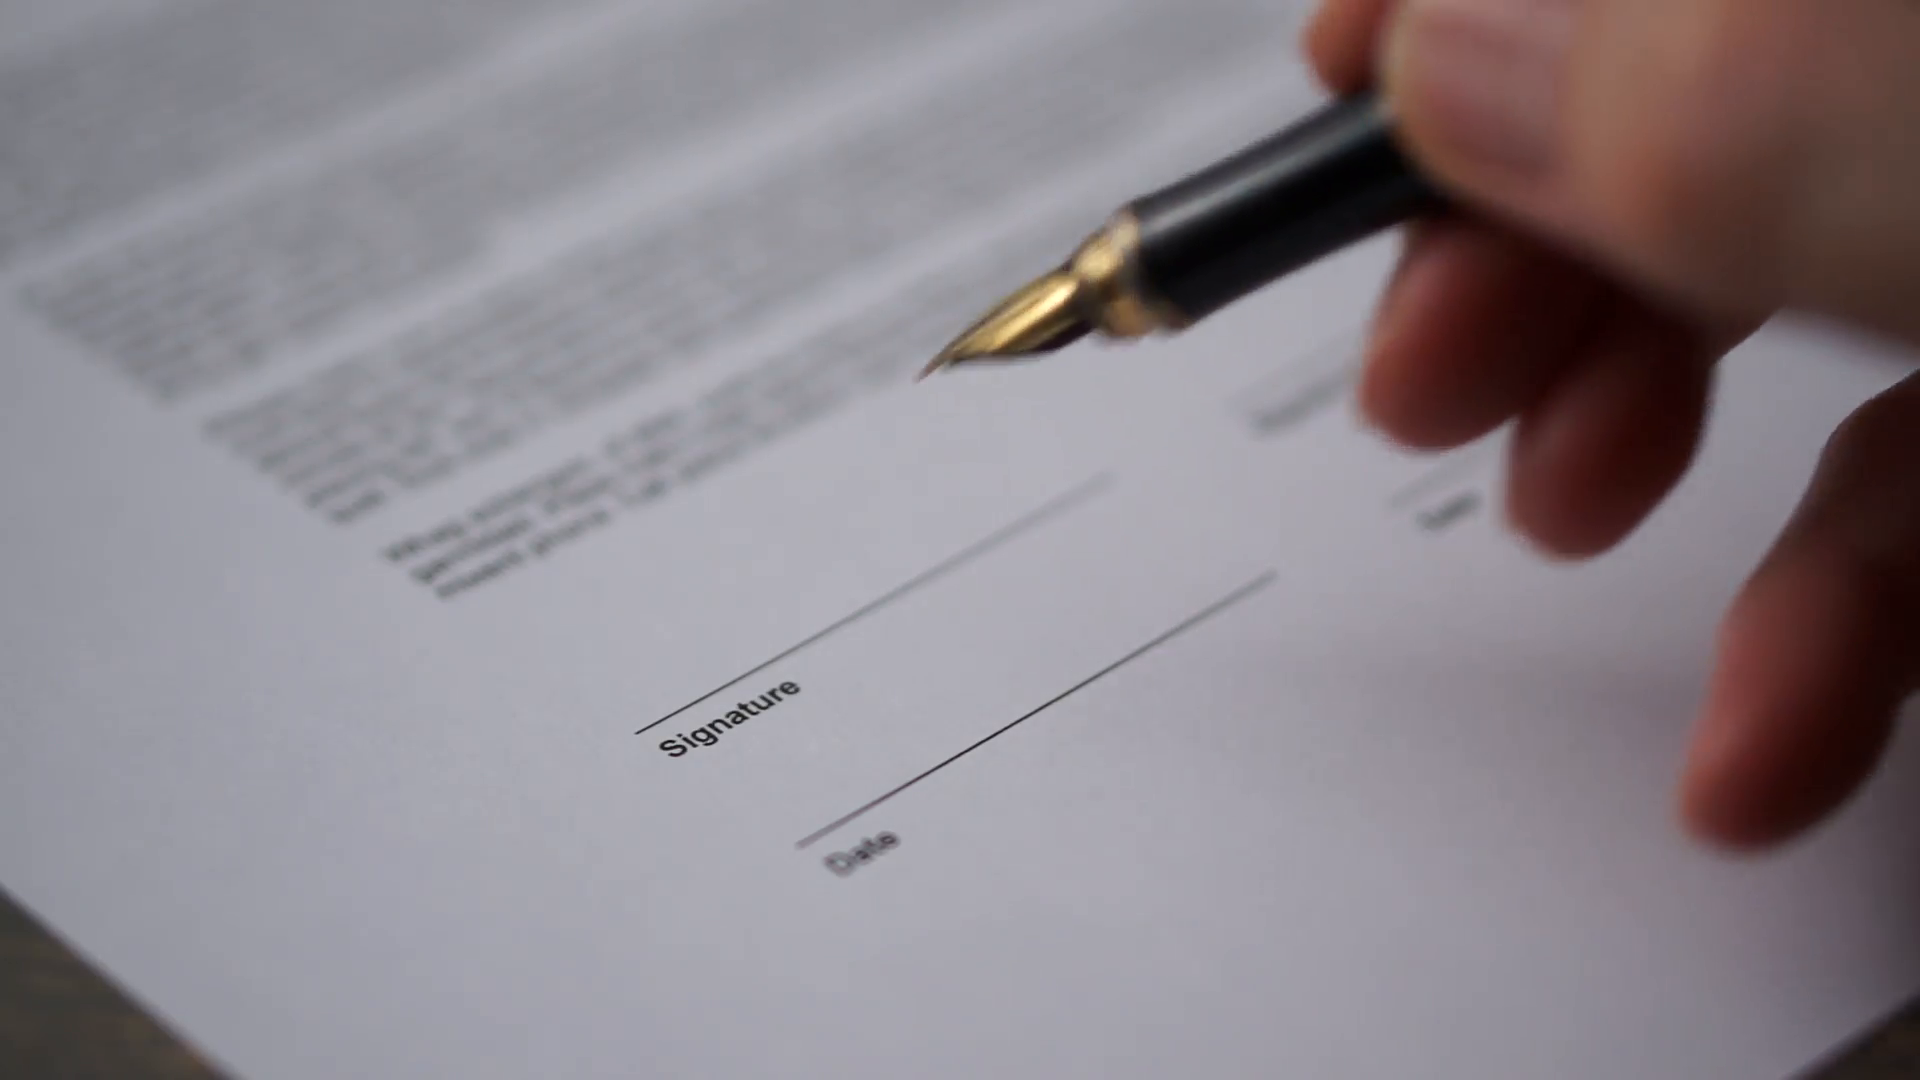 Client's hand while signing the contract